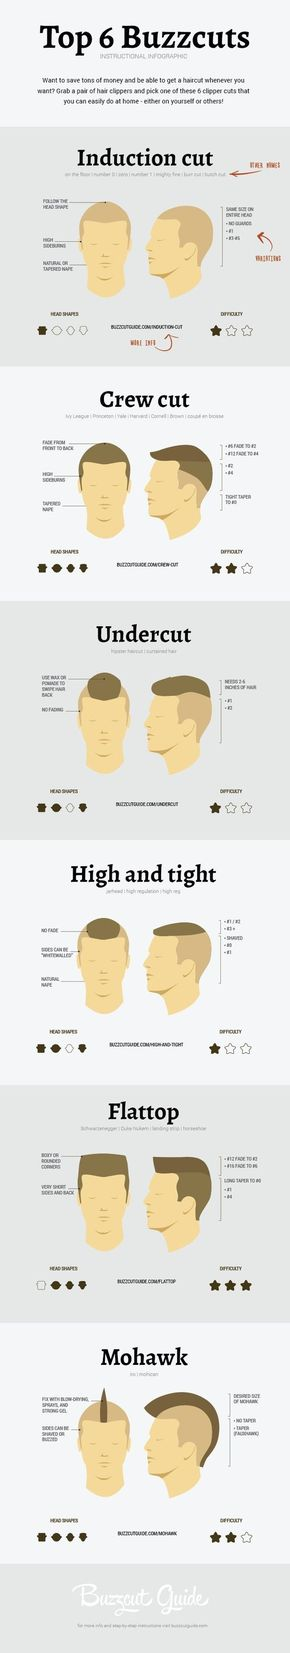 Not all buzzcuts are created equal.